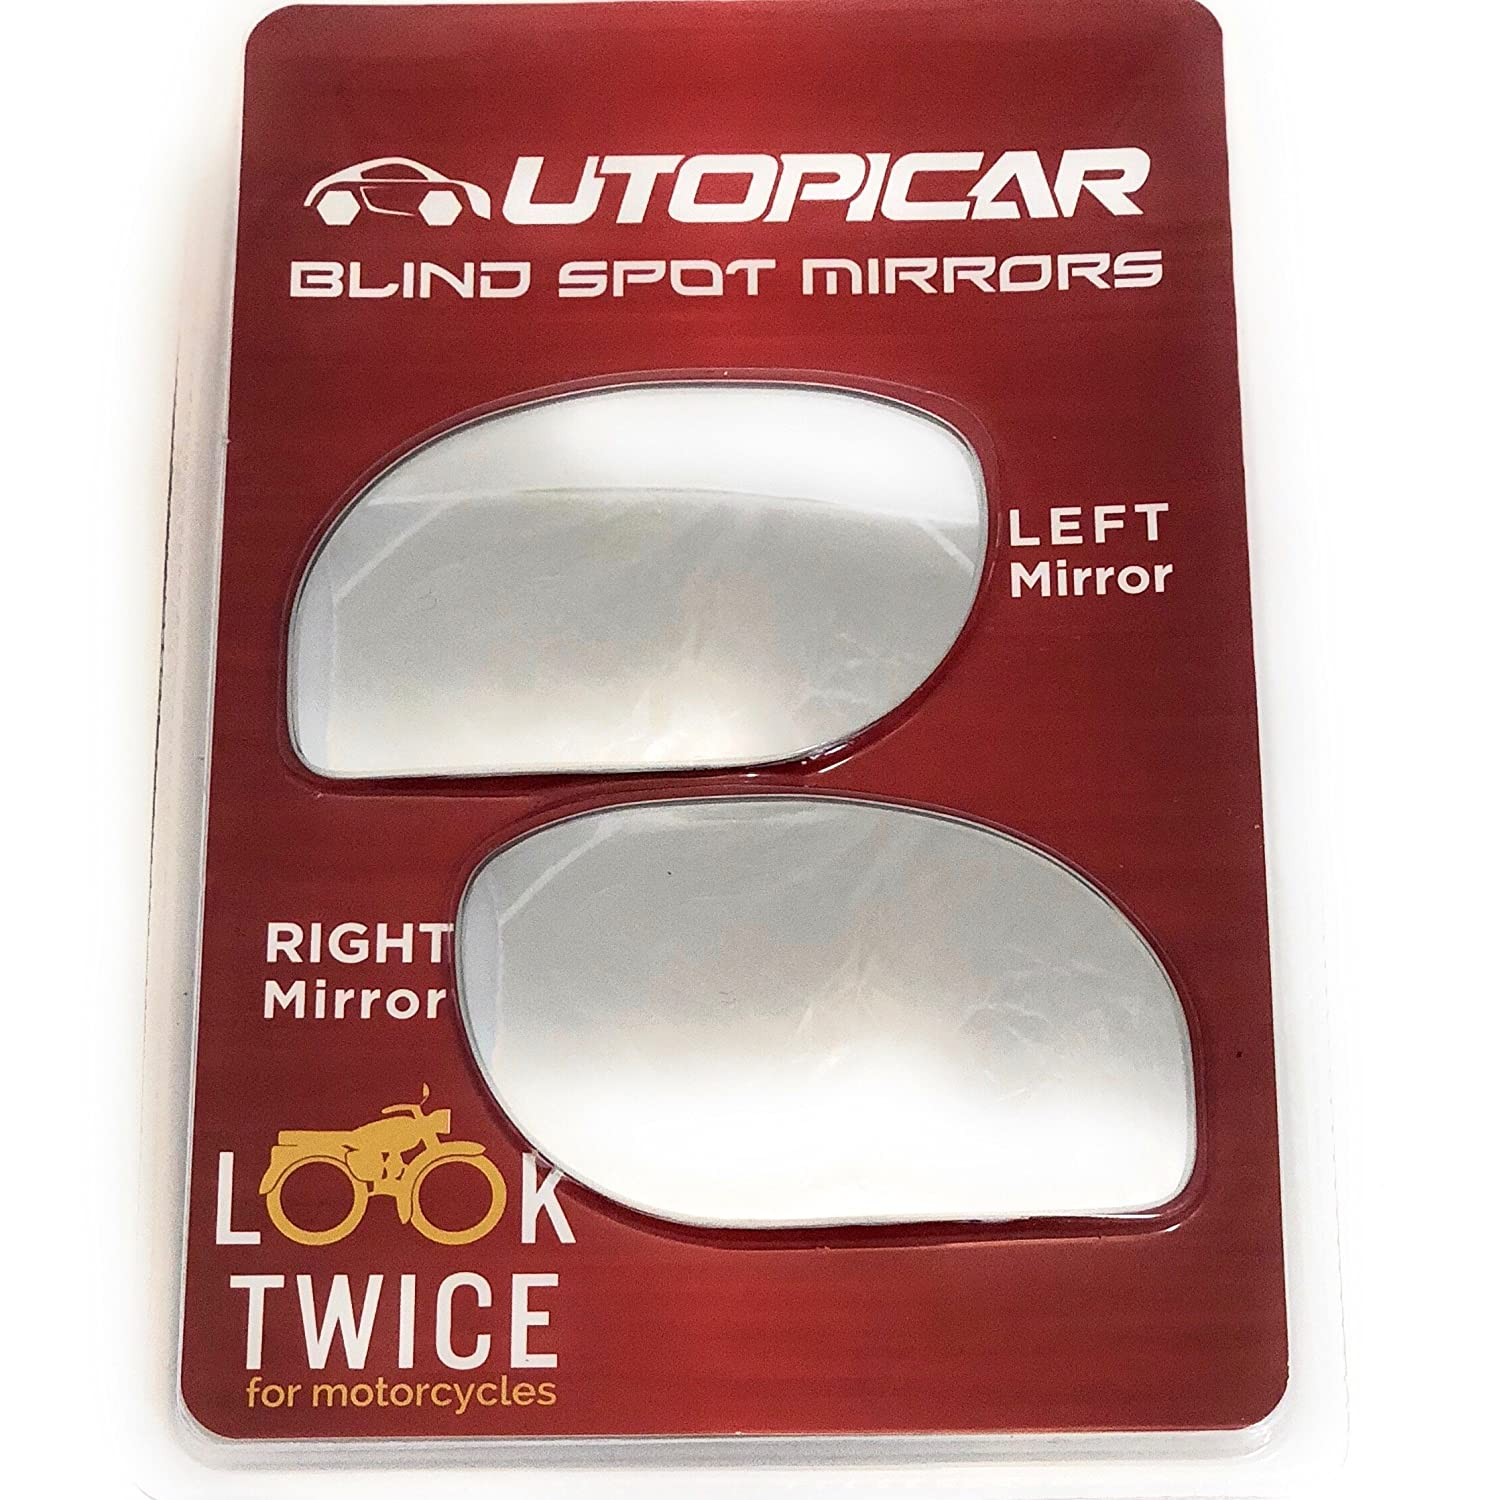 Blind Spot Mirrors. Unique design Car Mirror for blind side / Door mirrors engineered by Utopicar for larger image and traffic safety. Awesome rear view! [frameless, stick-on design] (2 pack) Zune Manufacturer